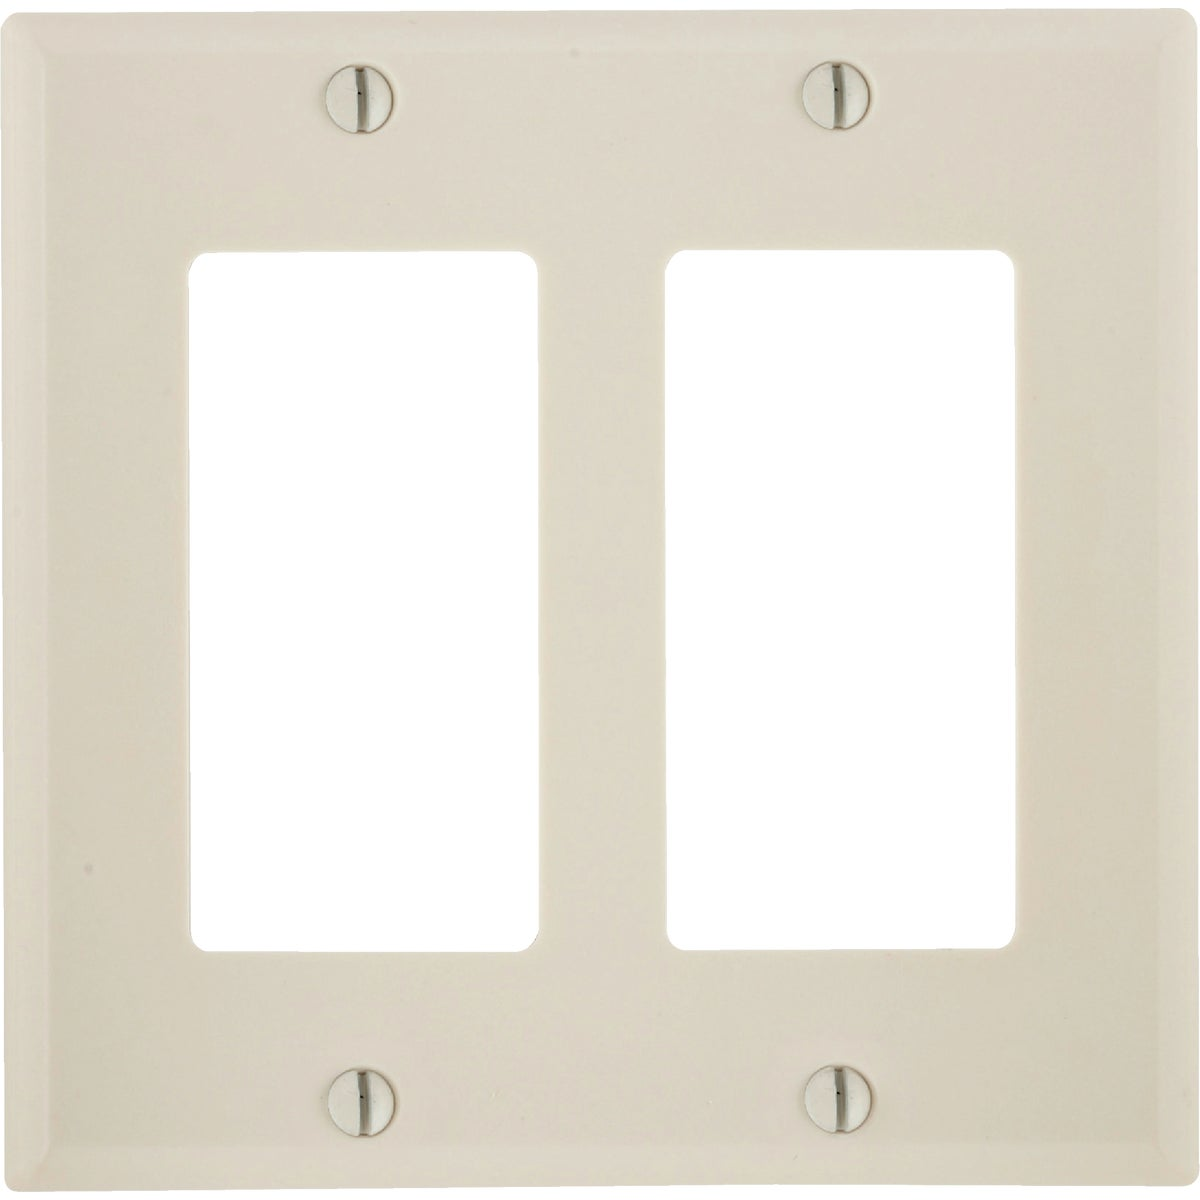 LT ALM ROCKER WALLPLATE - 011-80409-00T by Leviton Mfg Co